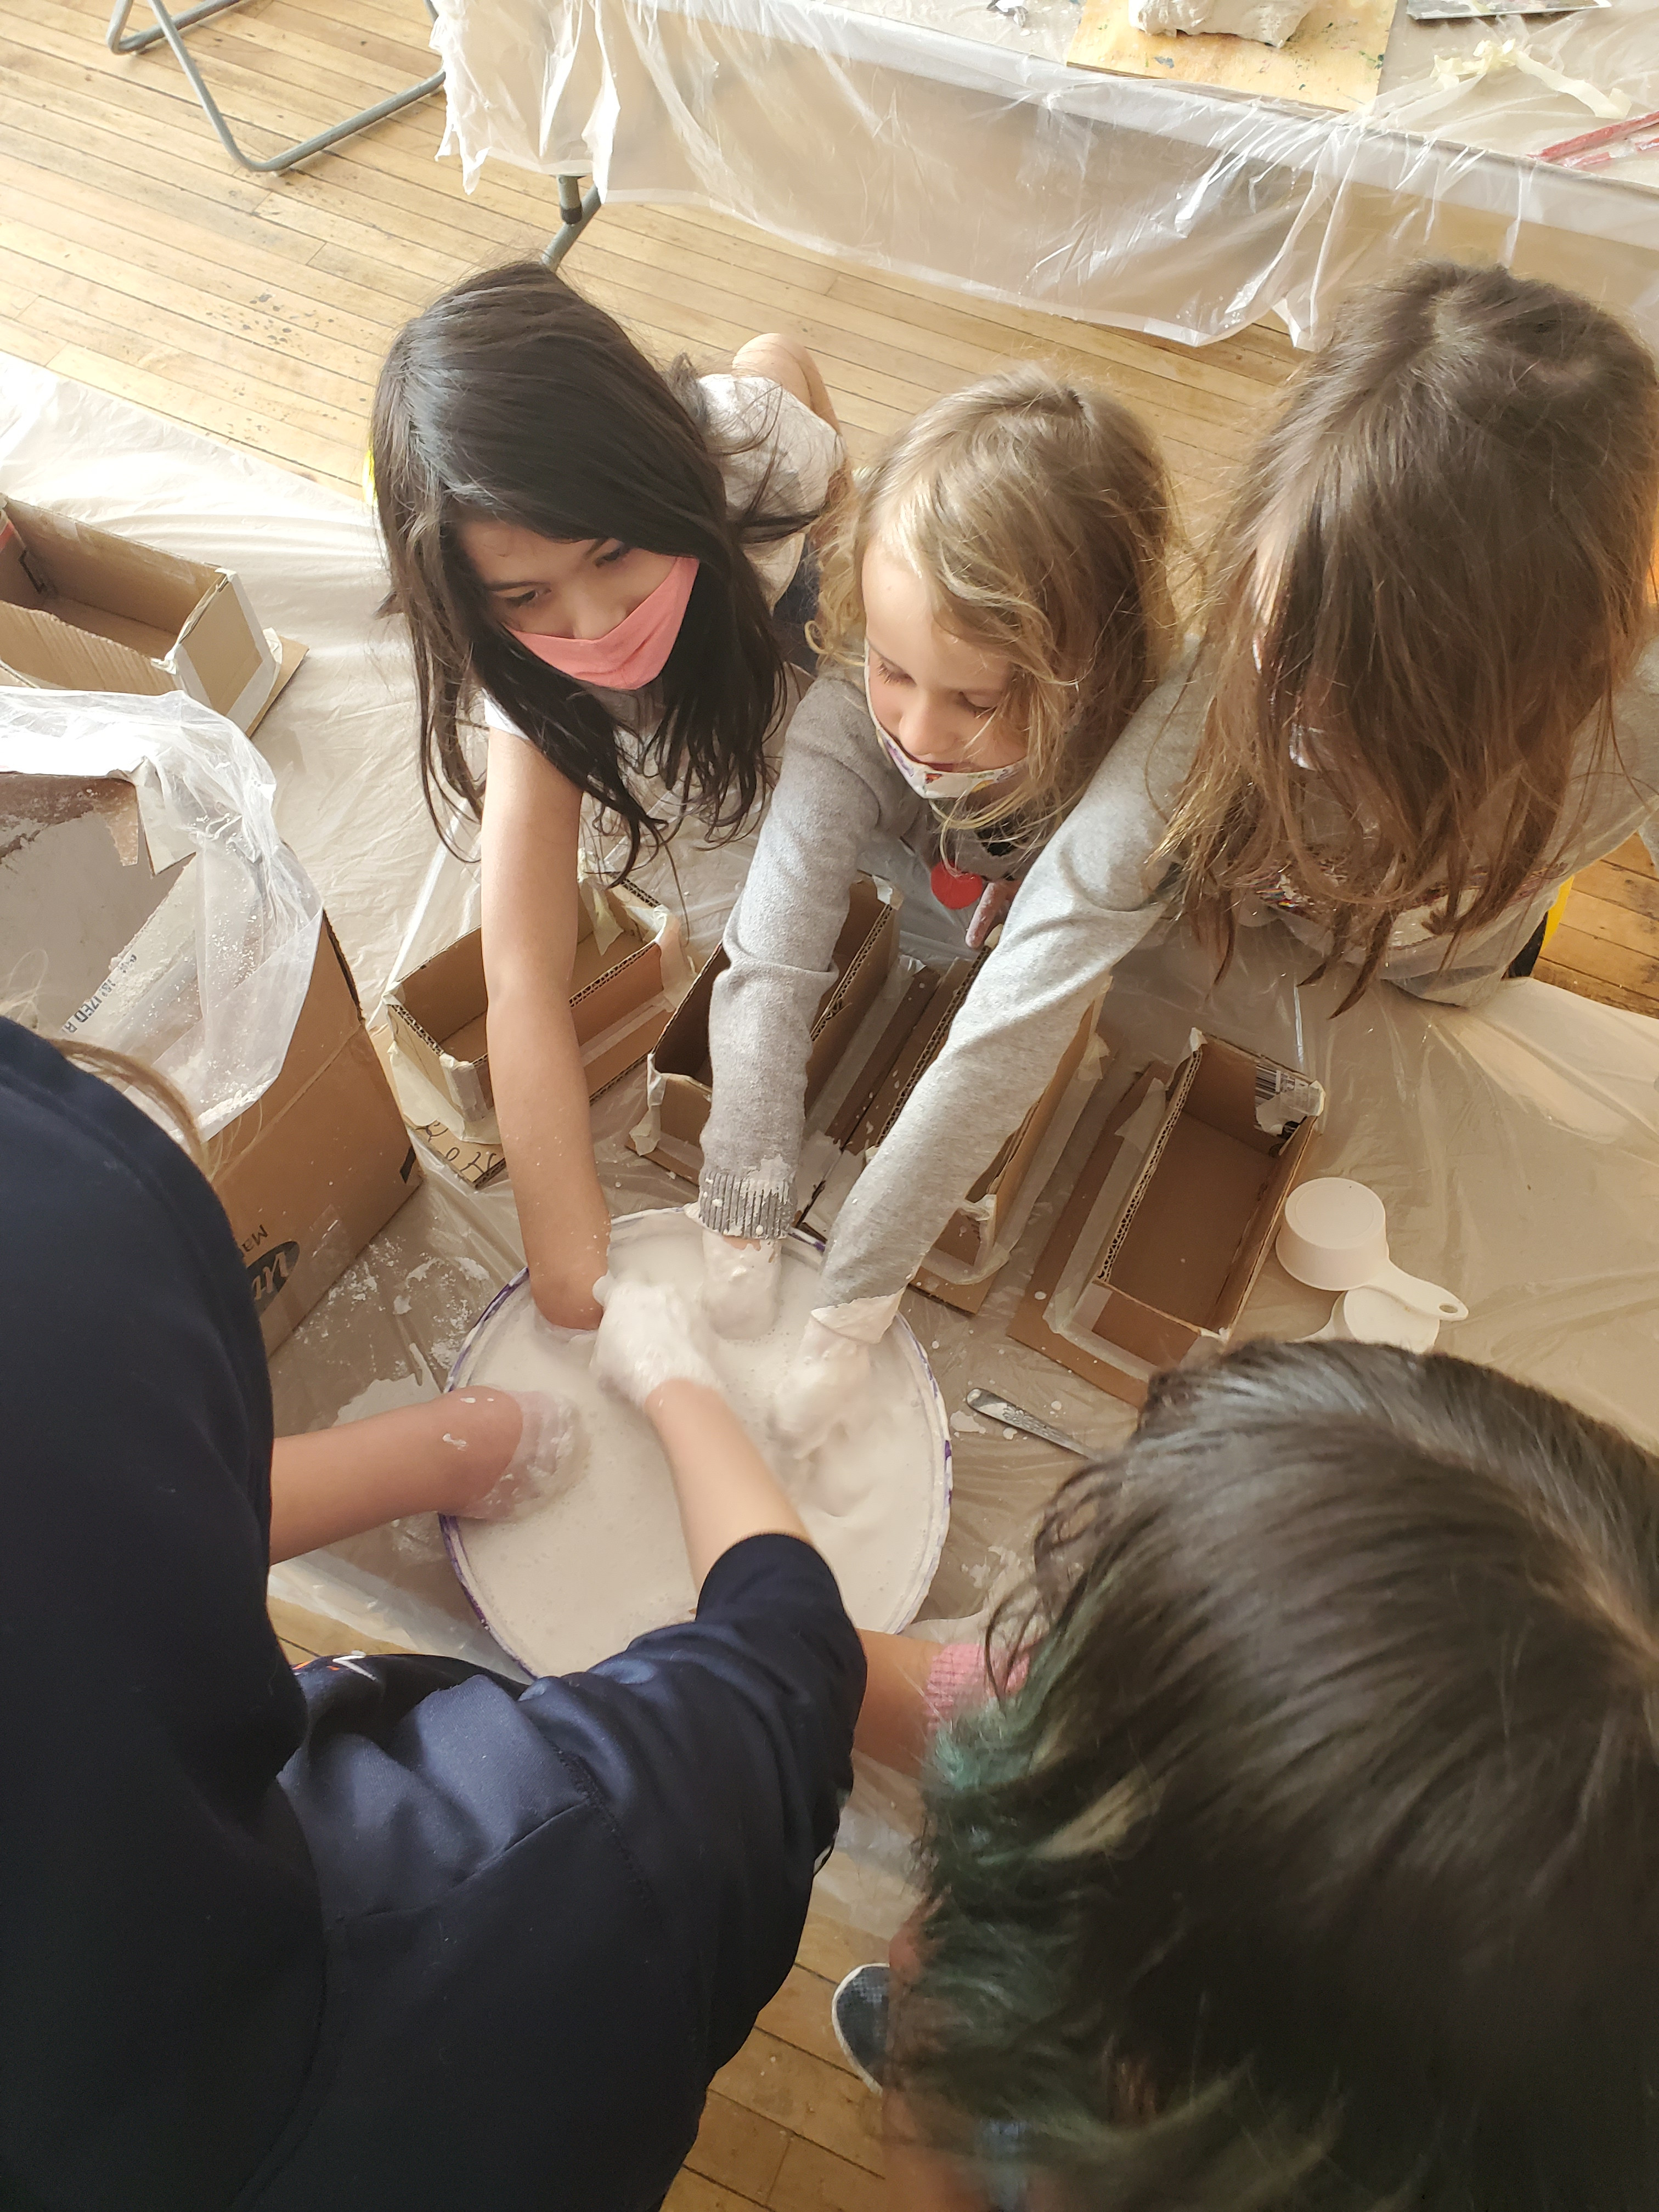 Thursday's Summer Fun for Young Artists